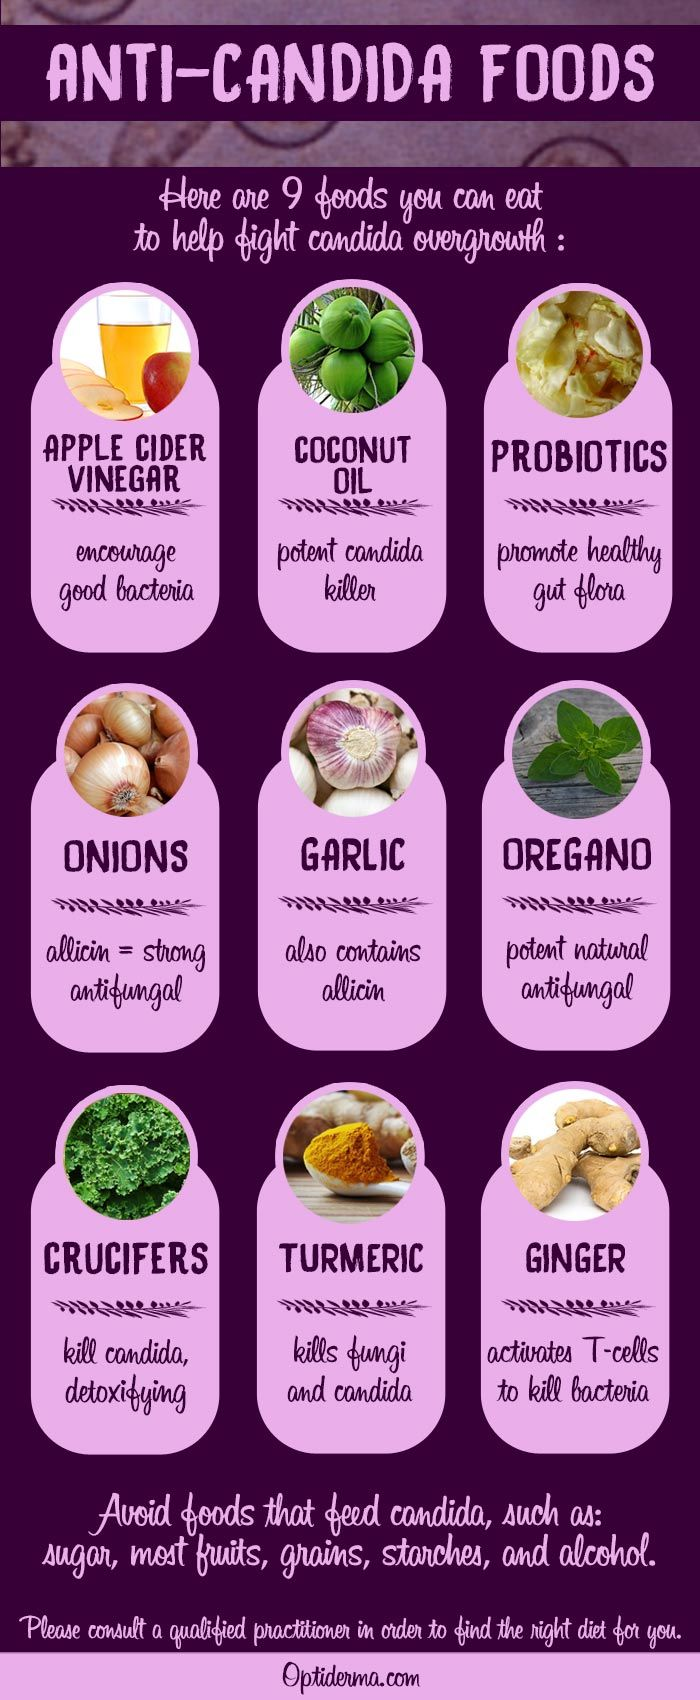 Here are the best foods to help fight candida overgrowth. Apple cider vinegar, coconut oil, onions, garlic, ginger, oregano have strong antifungal properties. Great foods to incorporate into your anti-candida diet, especially if you're prone to yeast infection! To learn more about antifungal foods and how to fight candida infection, read this post: https://www.optiderma.com/articles/best-antifungal-foods-anti-candida-diet/